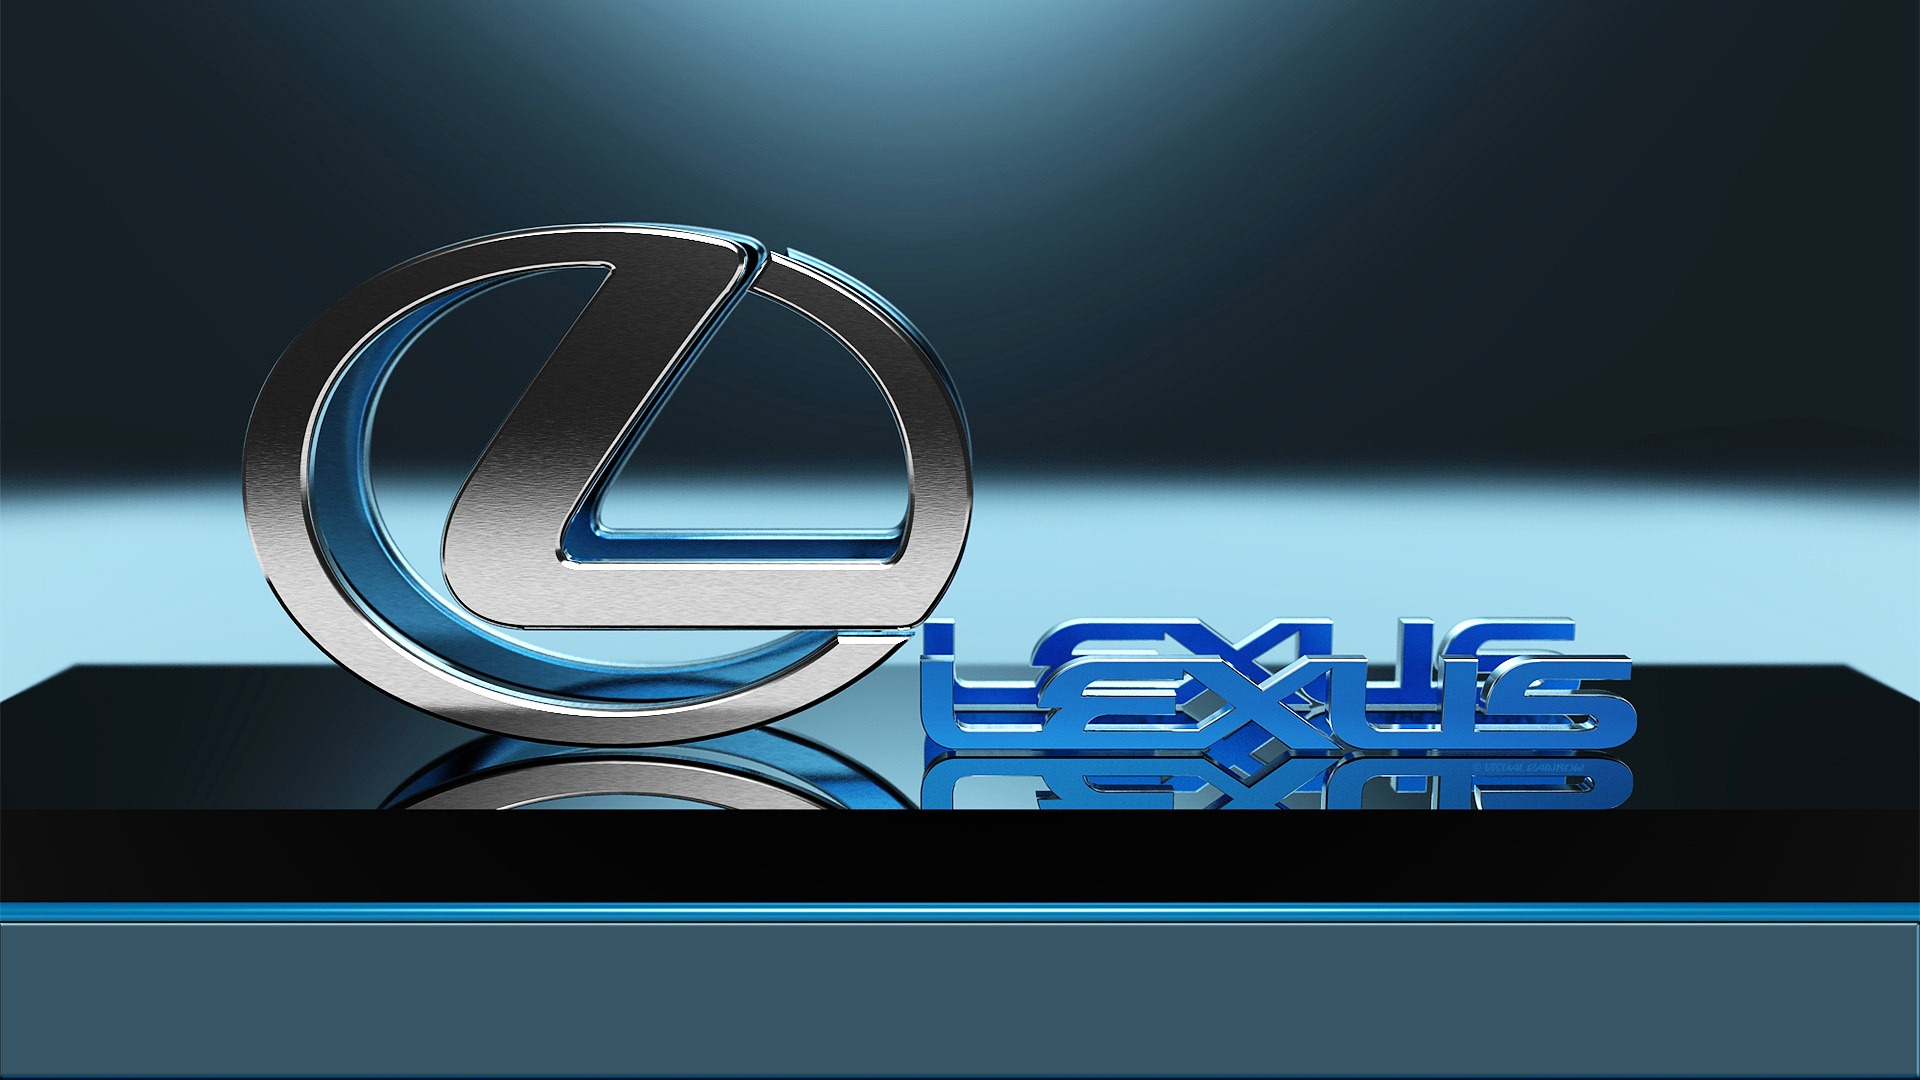 Mercedes Benz Logo >> Lexus Logo Wallpapers, Pictures, Images